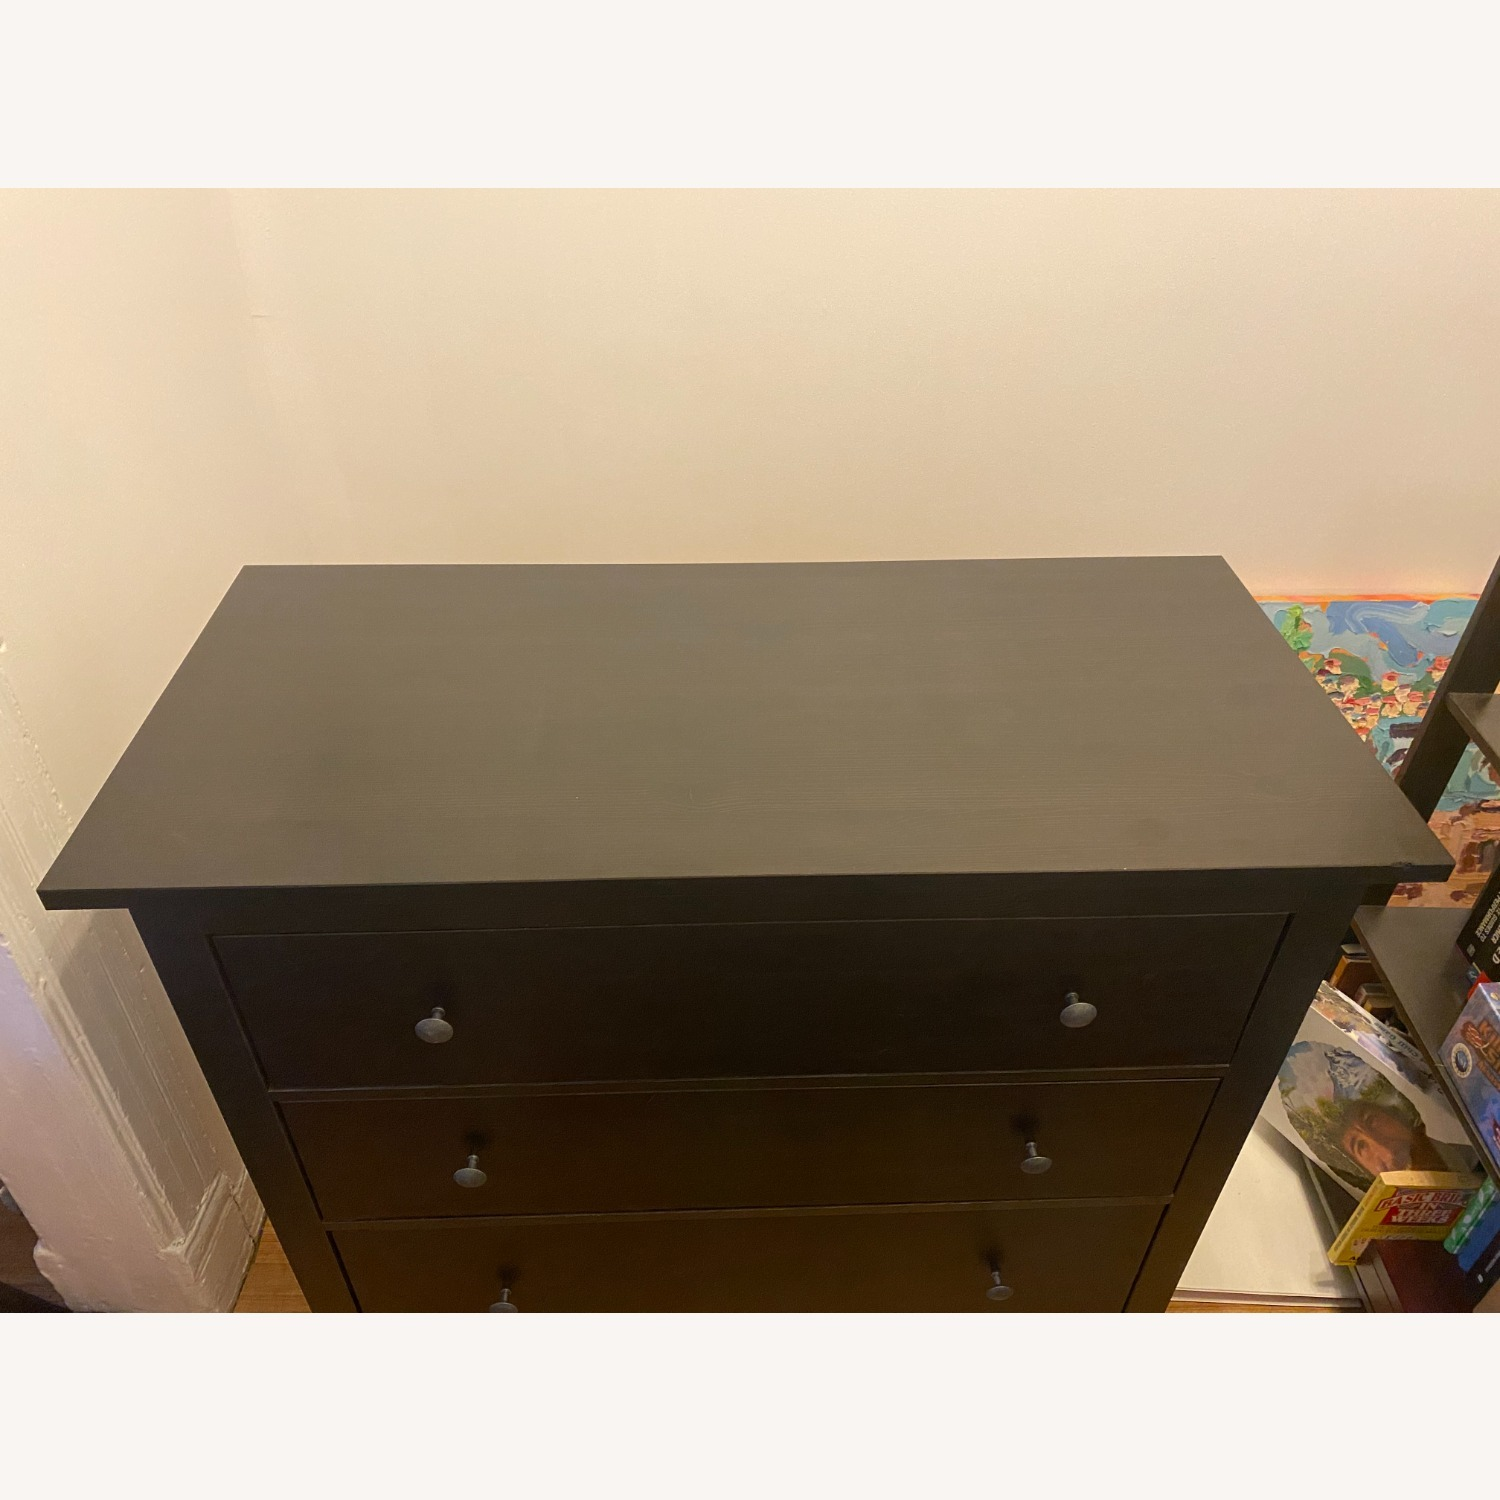 IKEA Black-Brown Three Drawer Wood Credenza - image-2